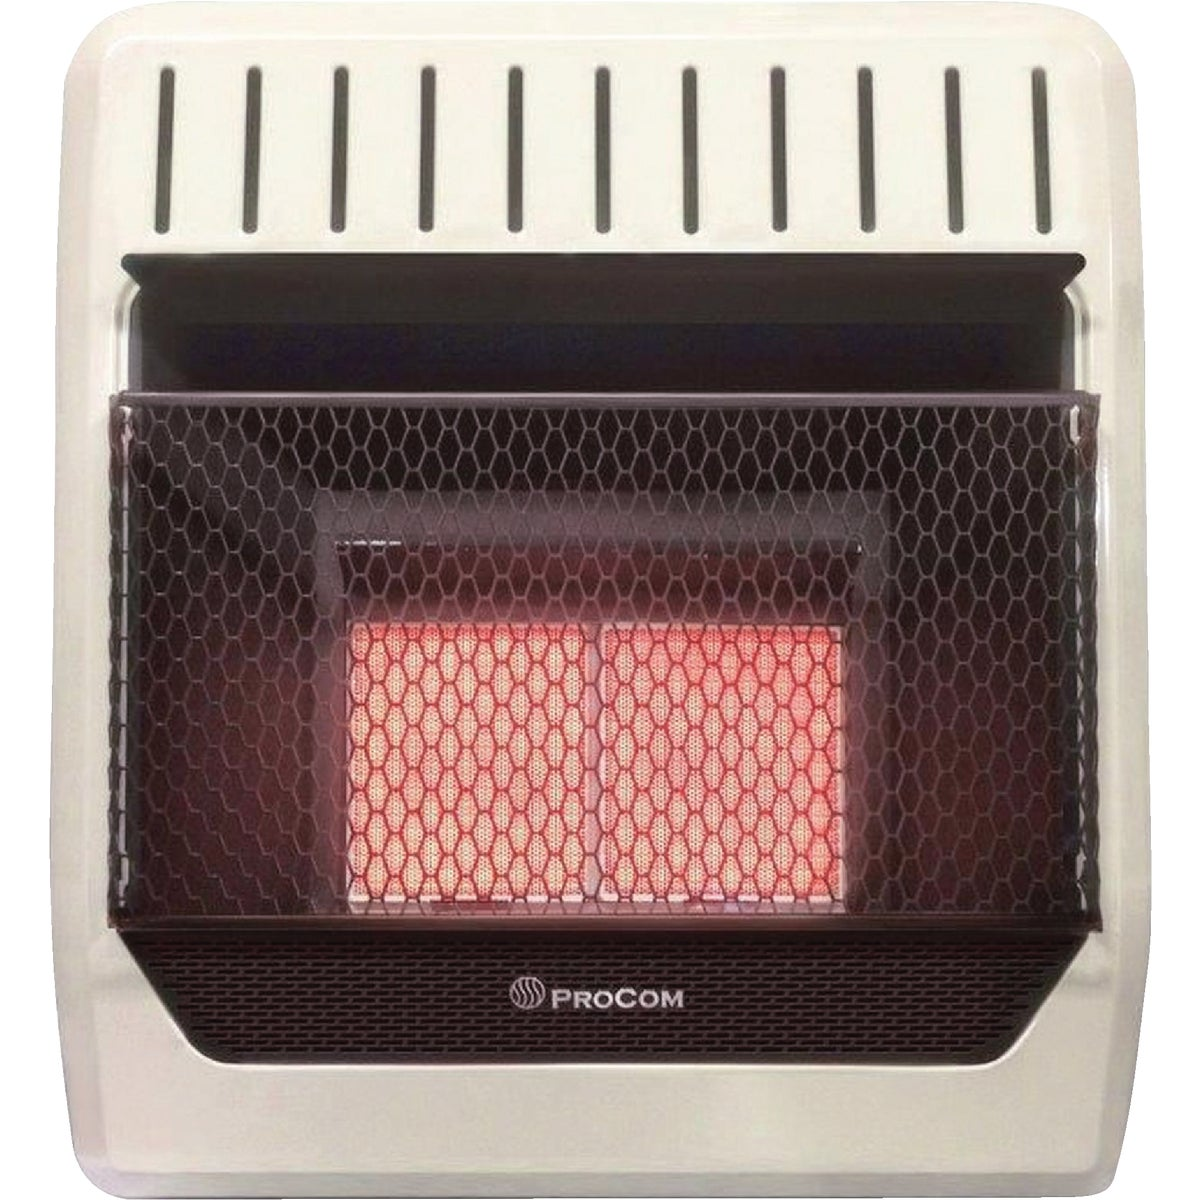 3PLAQUE DUAL WALL HEATER - GWR305 by World Marketing/Procom